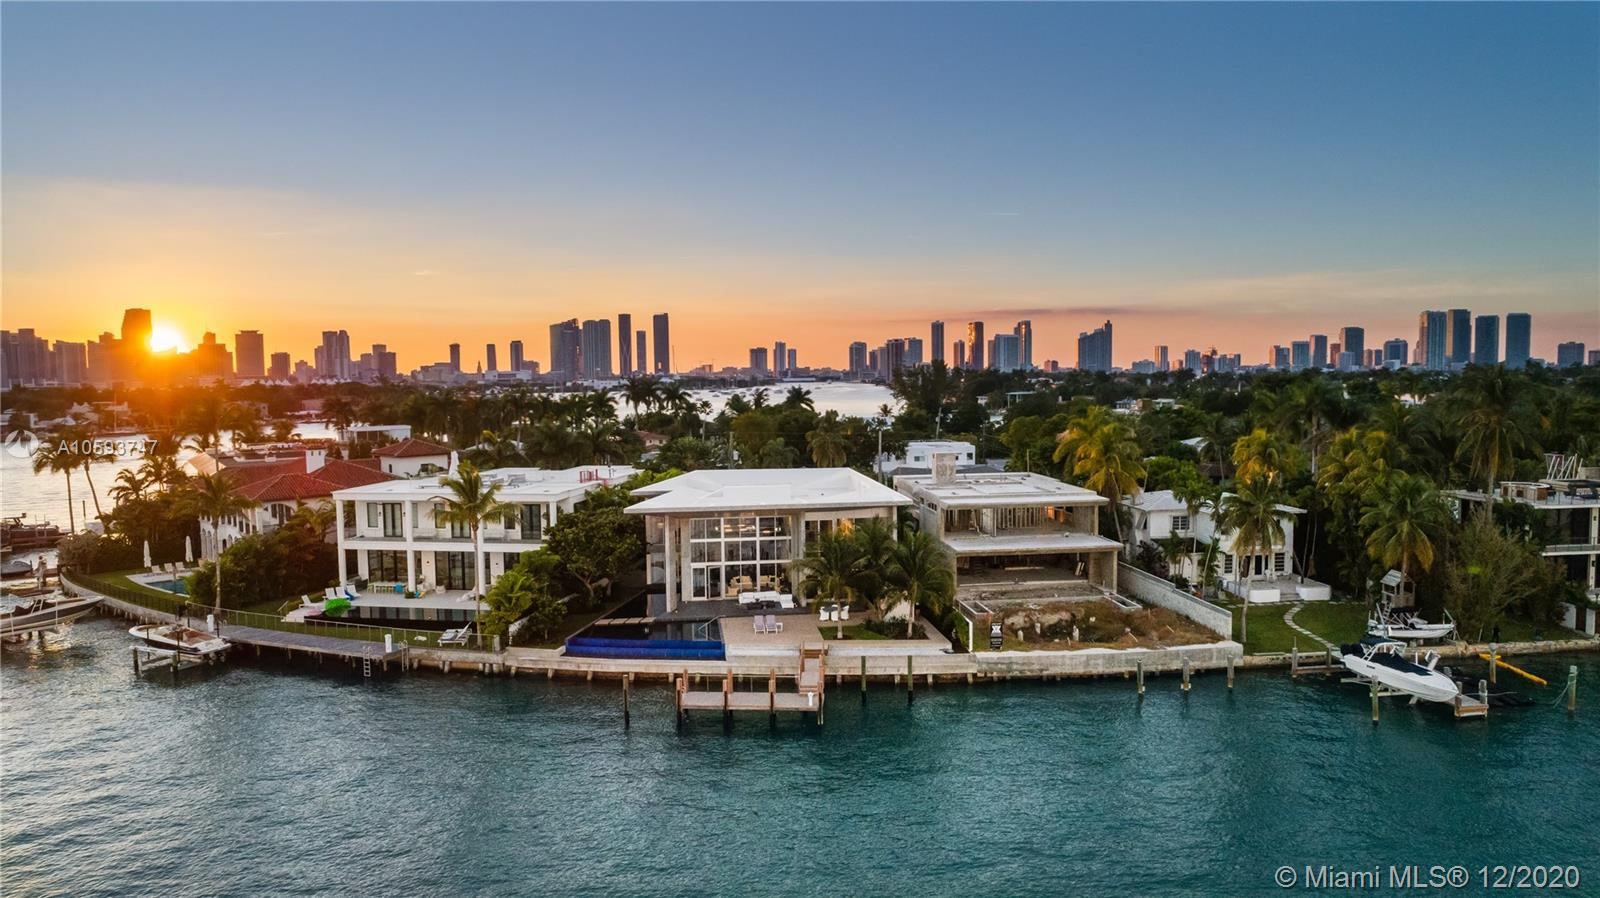 Architectural Modern Masterpiece And One-Of-A-Kind Work Of Art On Coveted Venetian Islands! The Art Connoisseur, Interior Design Lover, And Future Owner Will Revel In This Fully Custom Awe Inspiring Home. Boasting Expansive Biscayne Bay Waterfront Views, Soaring Ceilings Mixed W/Cantilevered Concrete & Voluminous Glass, Floating Sculpture Staircase W/Illuminated Black Quartz, Unique 19+Ógé¼Gäó Noa Rated Entry Door Never Again Replicated And Interior Tropical Garden W/Sustained Irrigation System. Chef Inspired Enormous Tailor Made Snaidero Kitchen & Bar W/Temp Controlled Glass Wine Room Is An Entertainers Dream! In Addition, Each Of The 5 Bedrooms Have En Suite Baths & Fully Built Out Custom Closets, 2 Separate Family Rooms W/Incredible Views, Commercial Grade Elevator, And 3 Car Collectors Garage